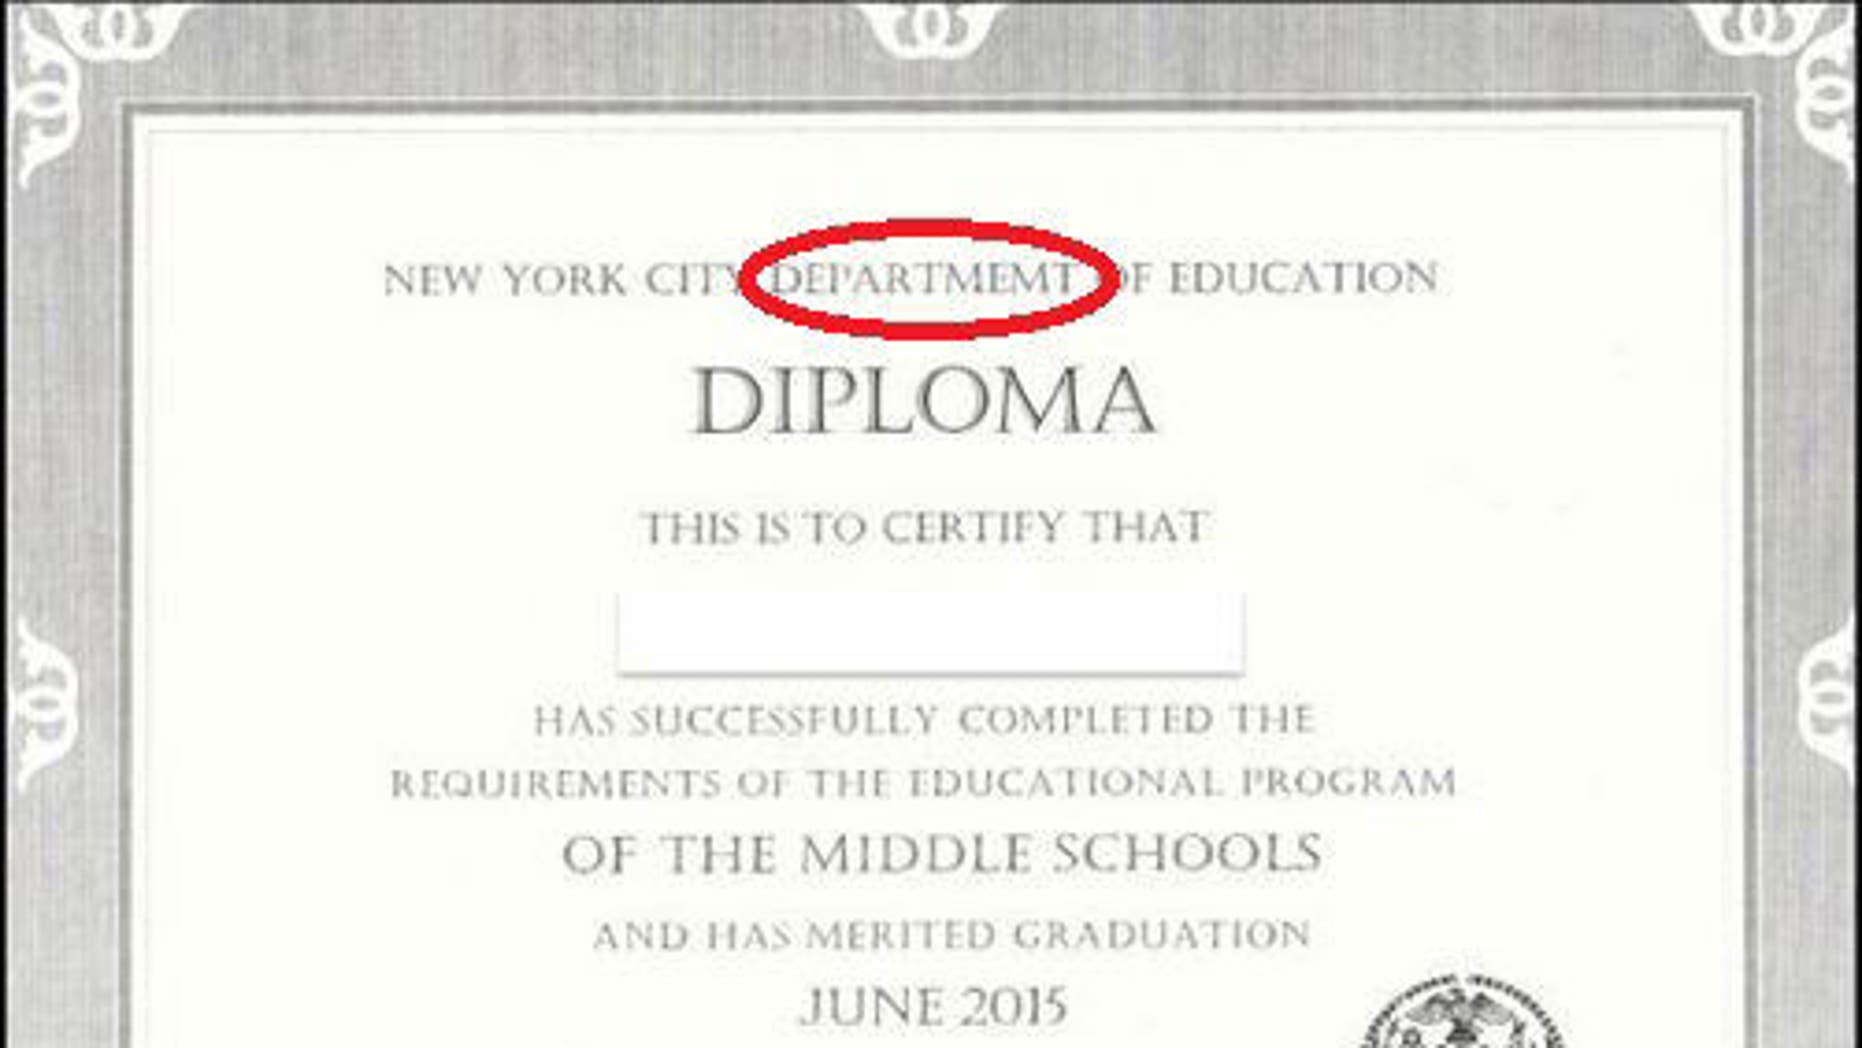 """Students graduating from New York City's Robert F. Wagner Middle School received diplomas with the word """"department"""" misspelled. (MyFoxNY.com)"""